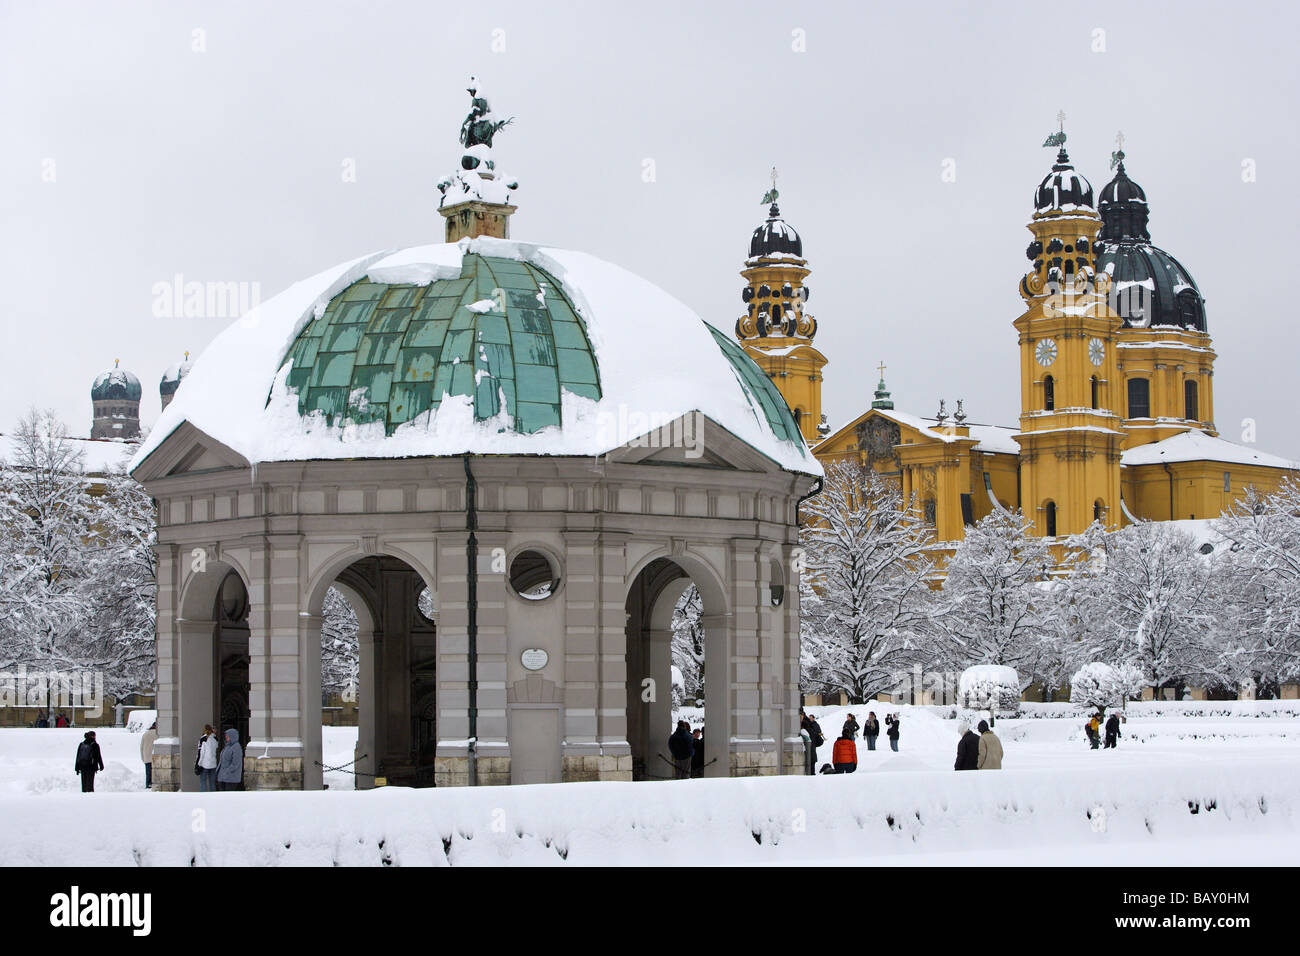 A winter's day at the Hofgarten and its pavillion, the onionshaped towers of the Frauenkirche and the yellow - Stock Image